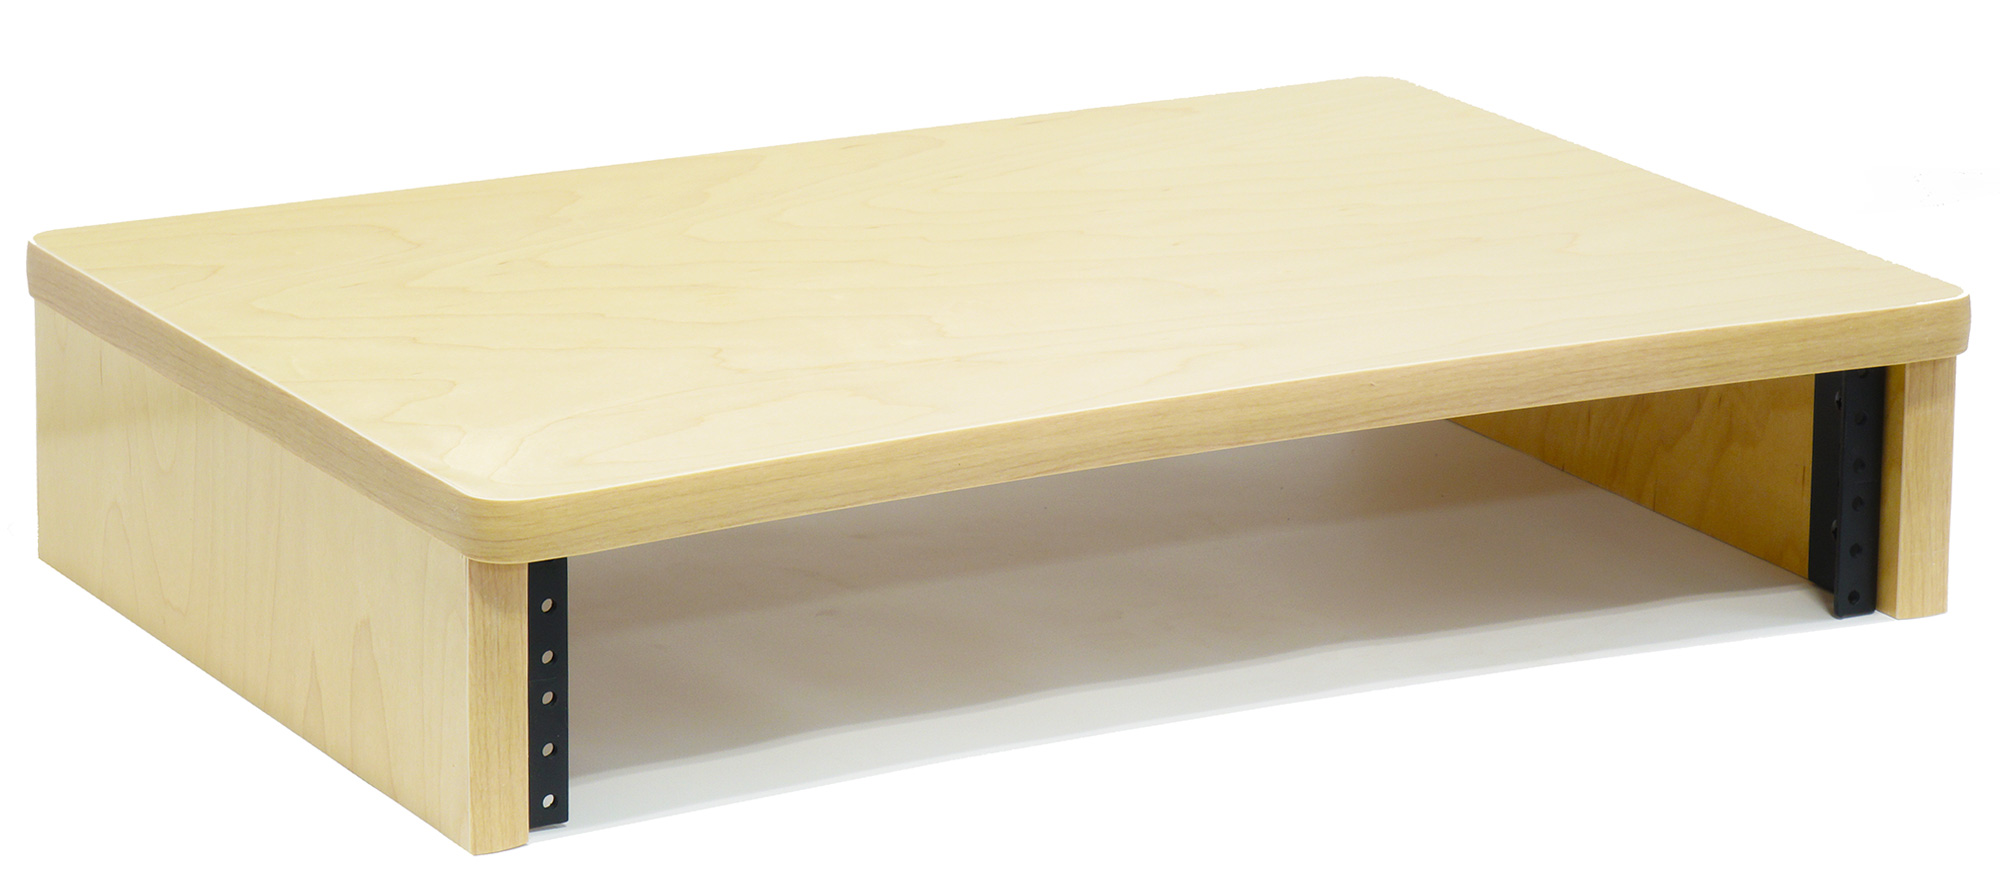 Maple Computer Monitor Stand with 2U Rack Rails